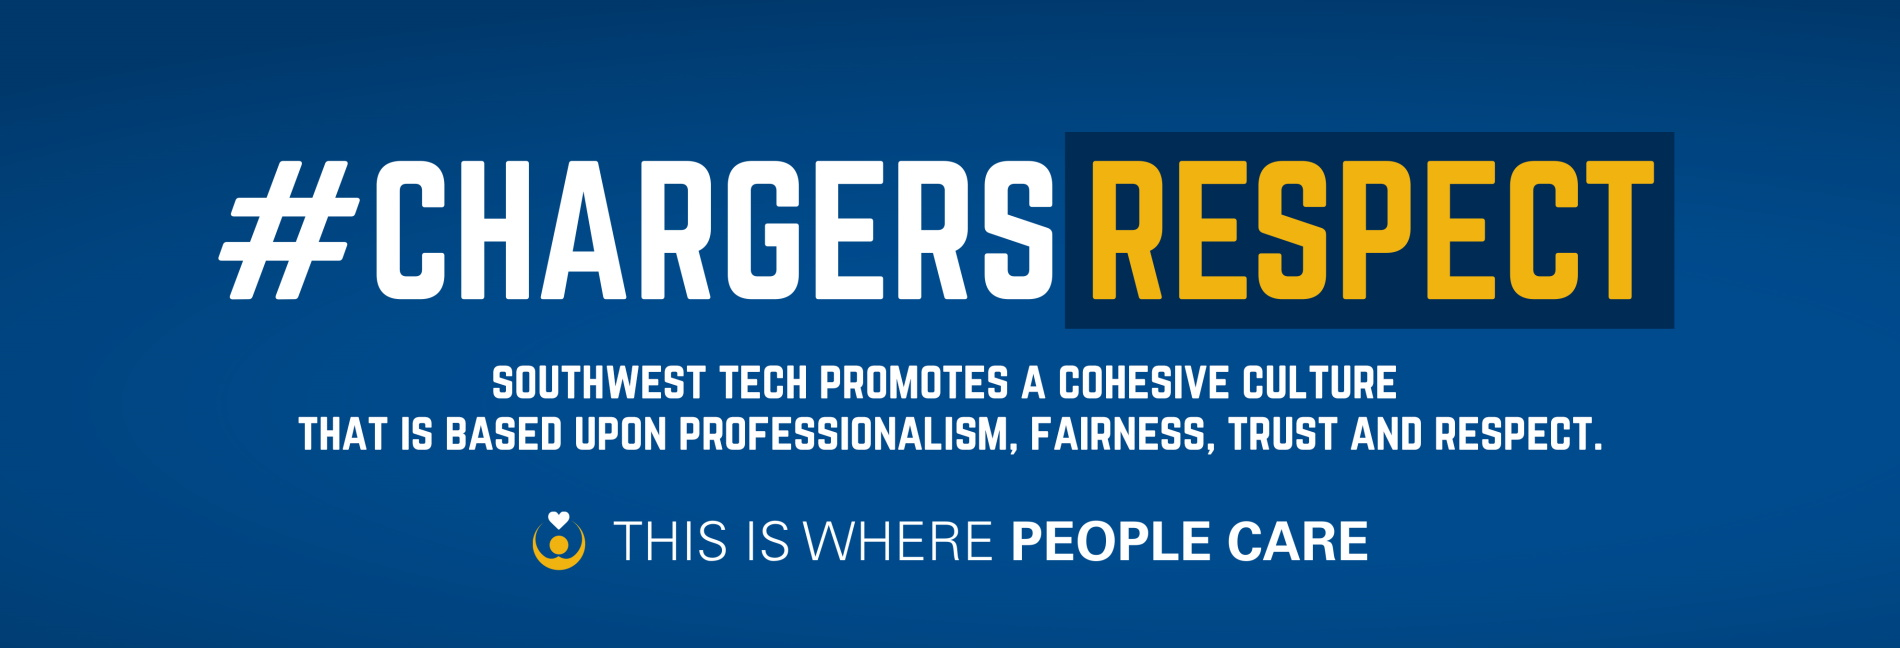 Chargers Respect Pledge